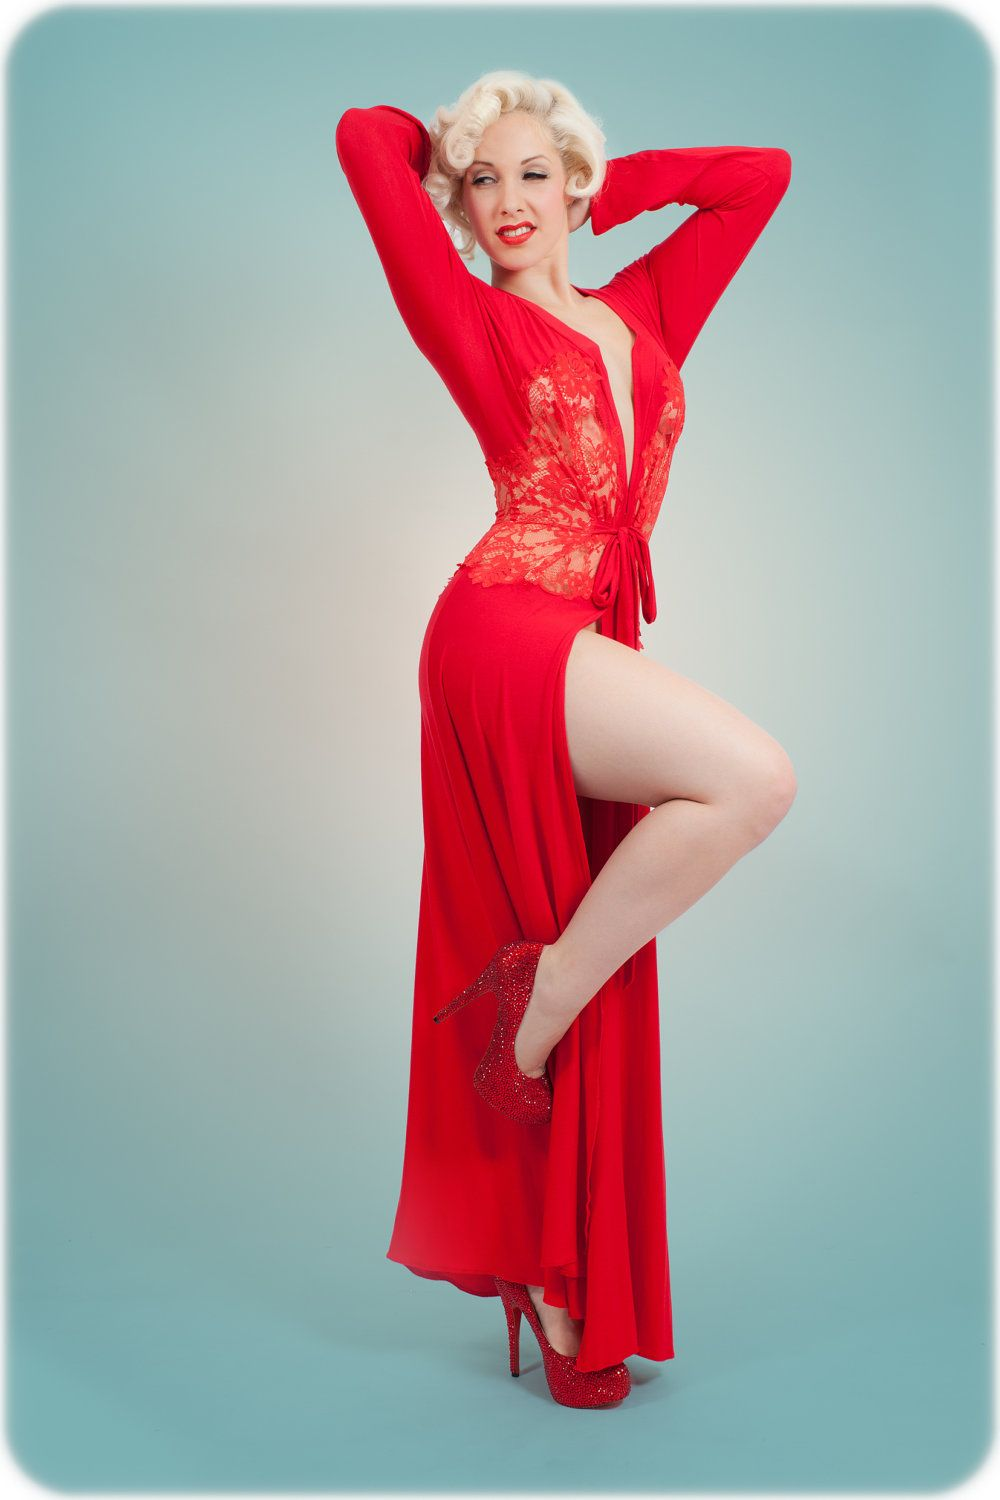 the nell robe red robe dressing gown inspired by marilyn monroe pin up girl retro vintage. Black Bedroom Furniture Sets. Home Design Ideas